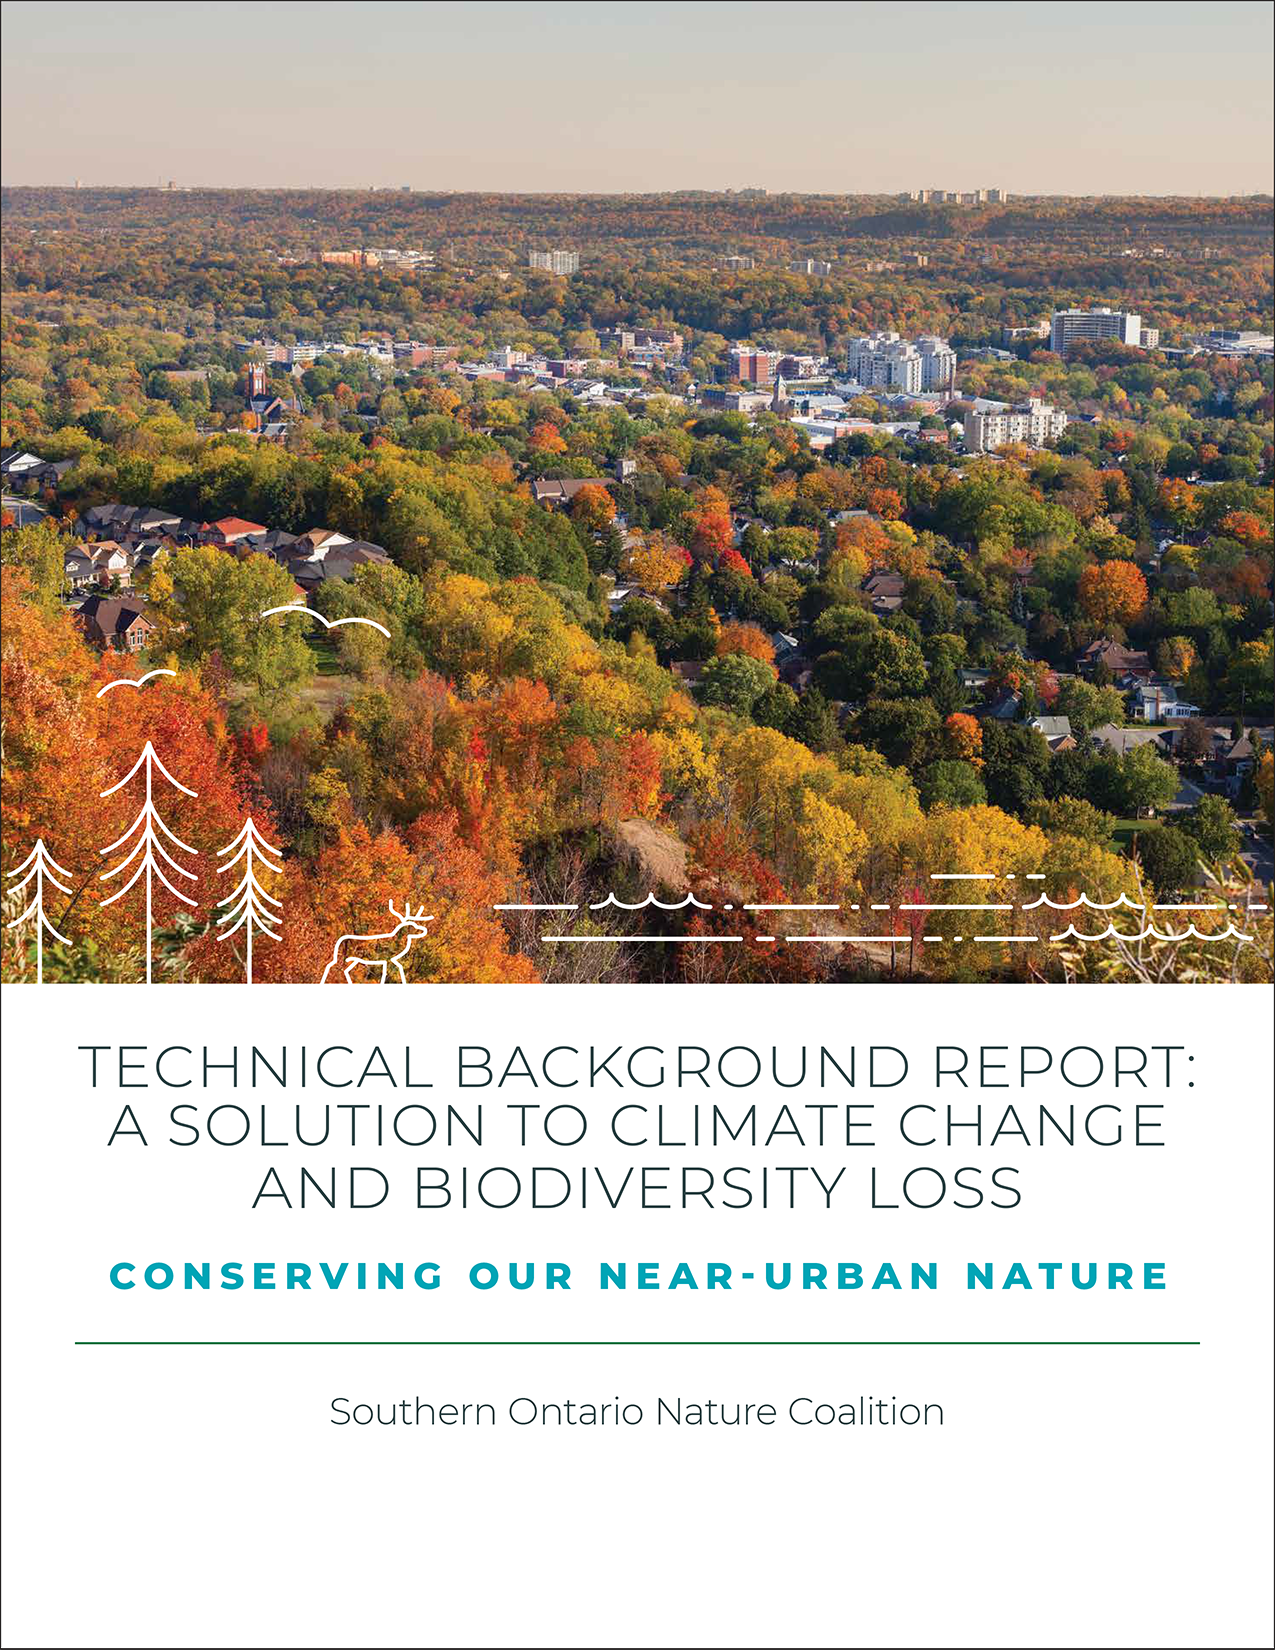 TECHNICAL BACKGROUND REPORT: A SOLUTION TO CLIMATE CHANGE AND BIODIVERSITY LOSS